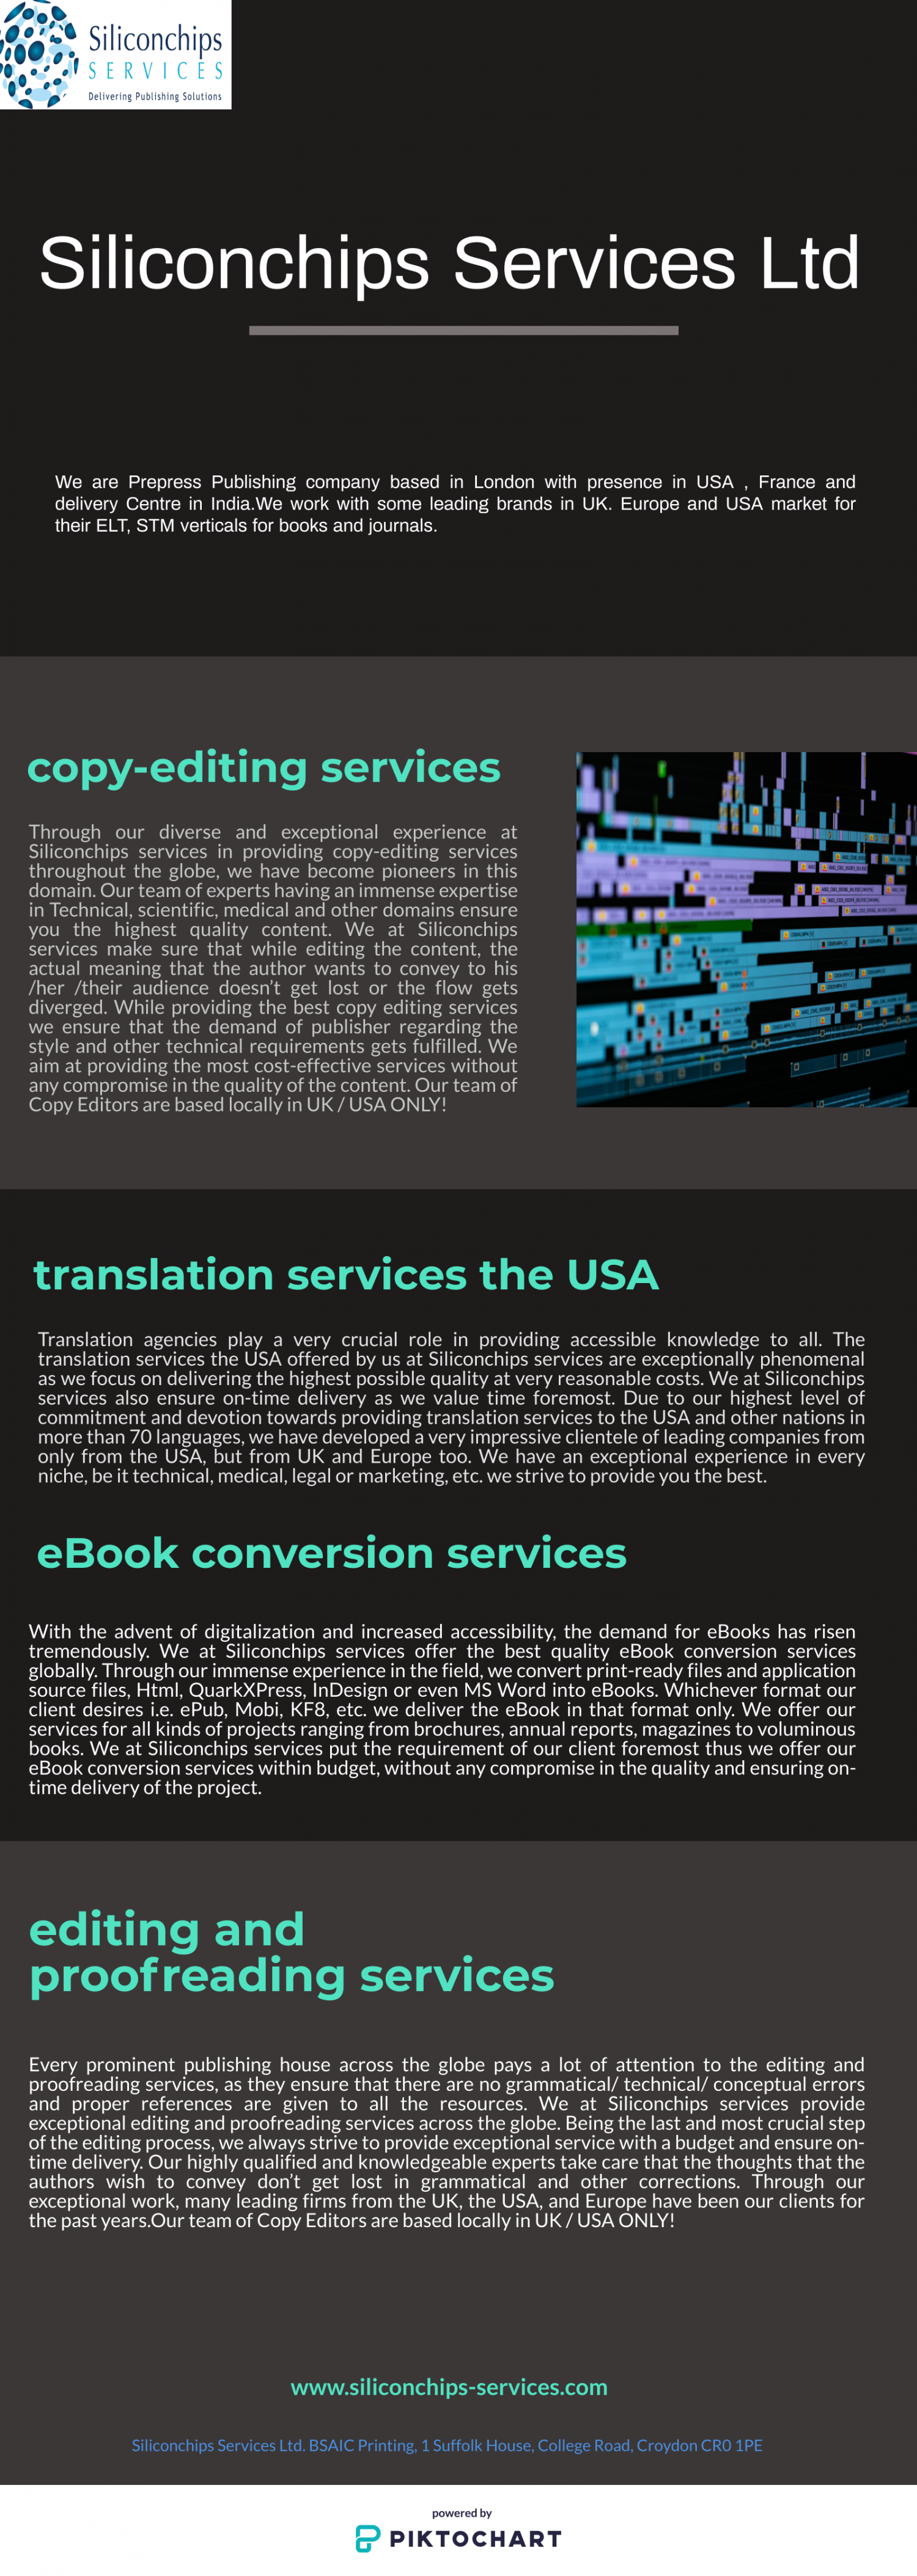 copy-editing services Infographic